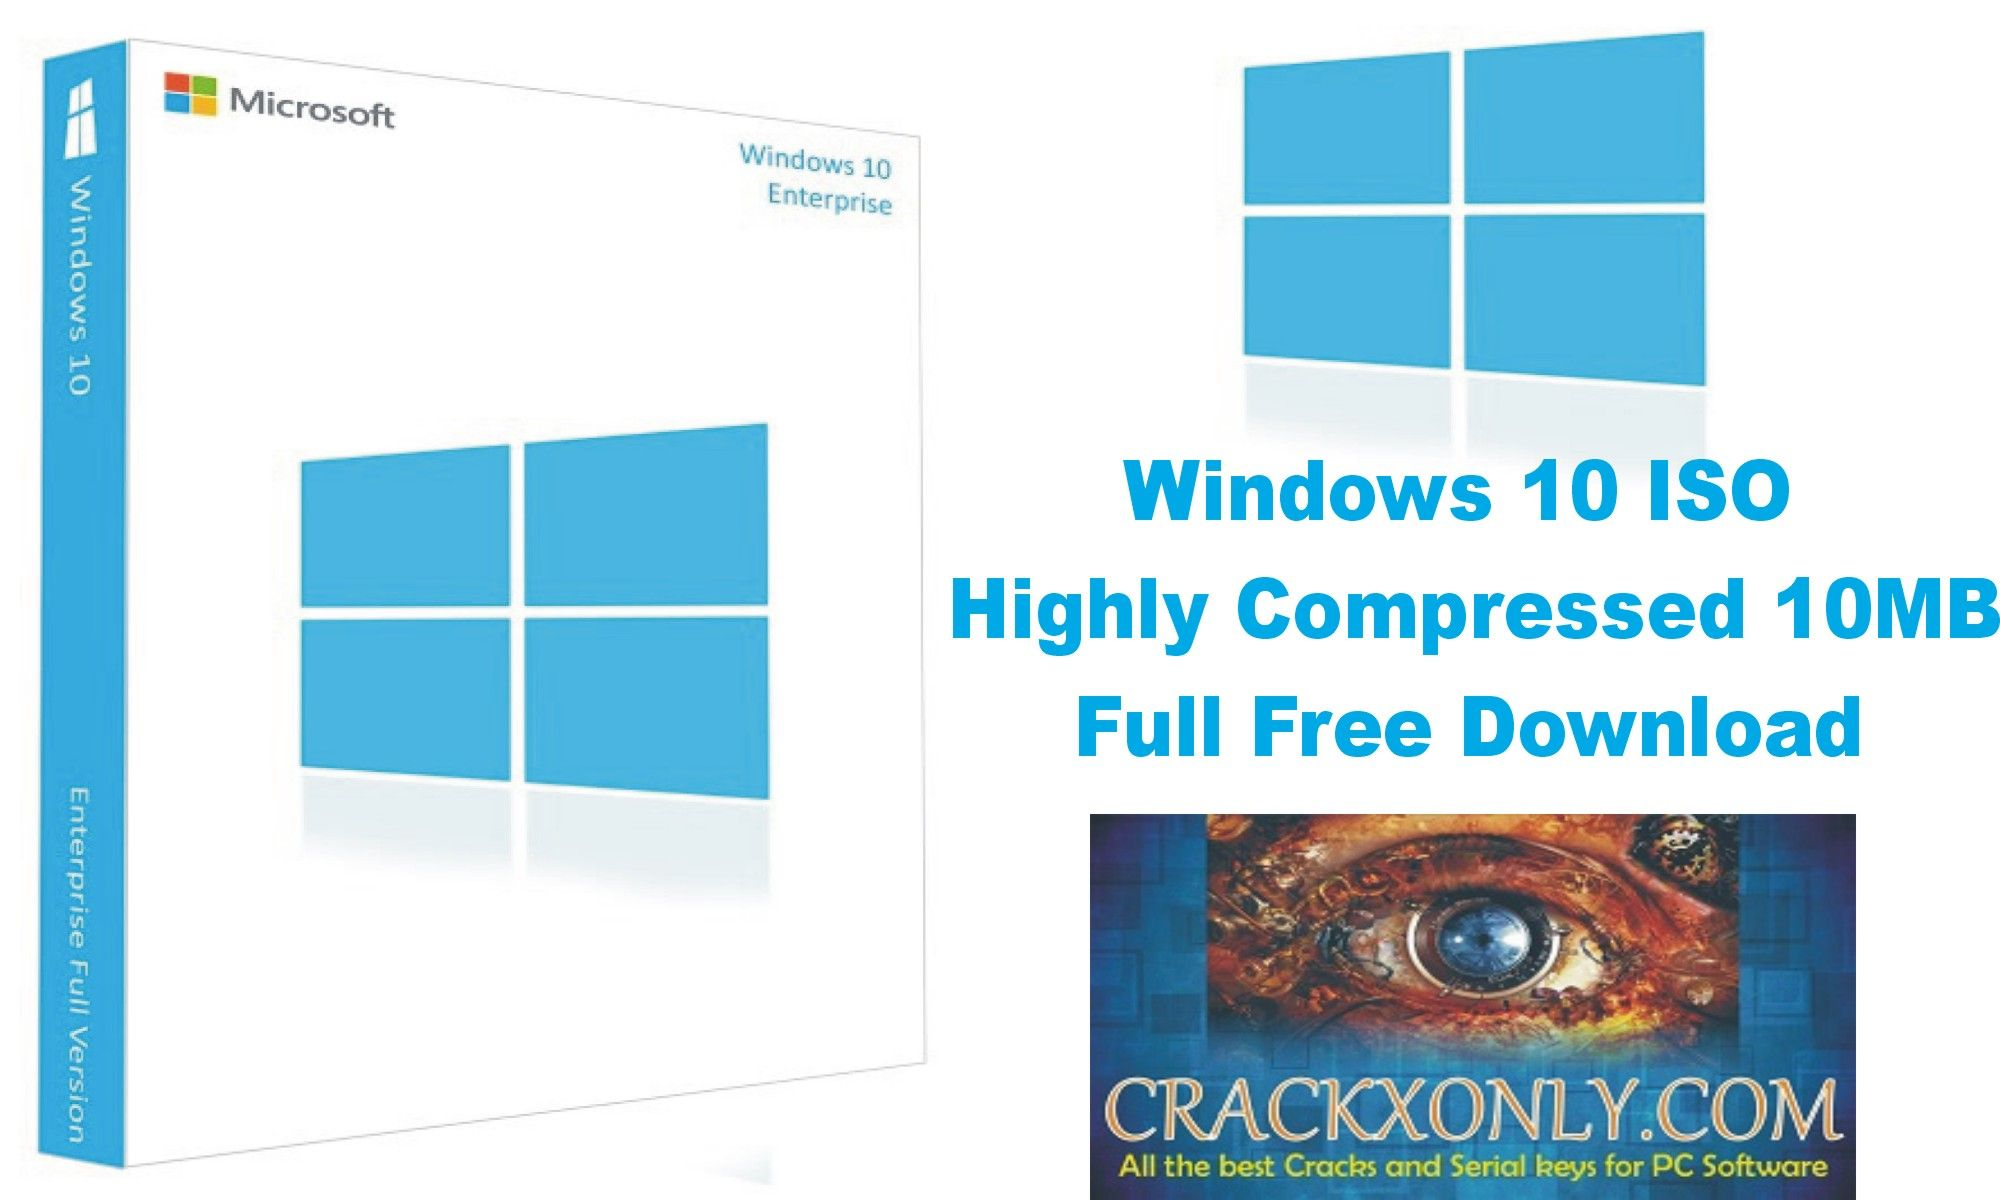 windows 10 iso image free download with crack